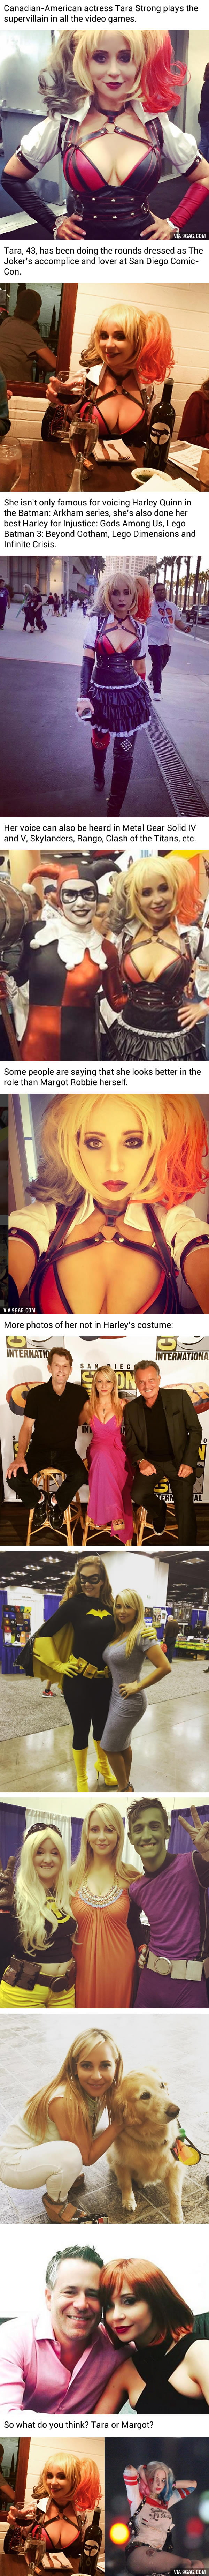 This Woman Plays Harley Quinn In All The Video Games...